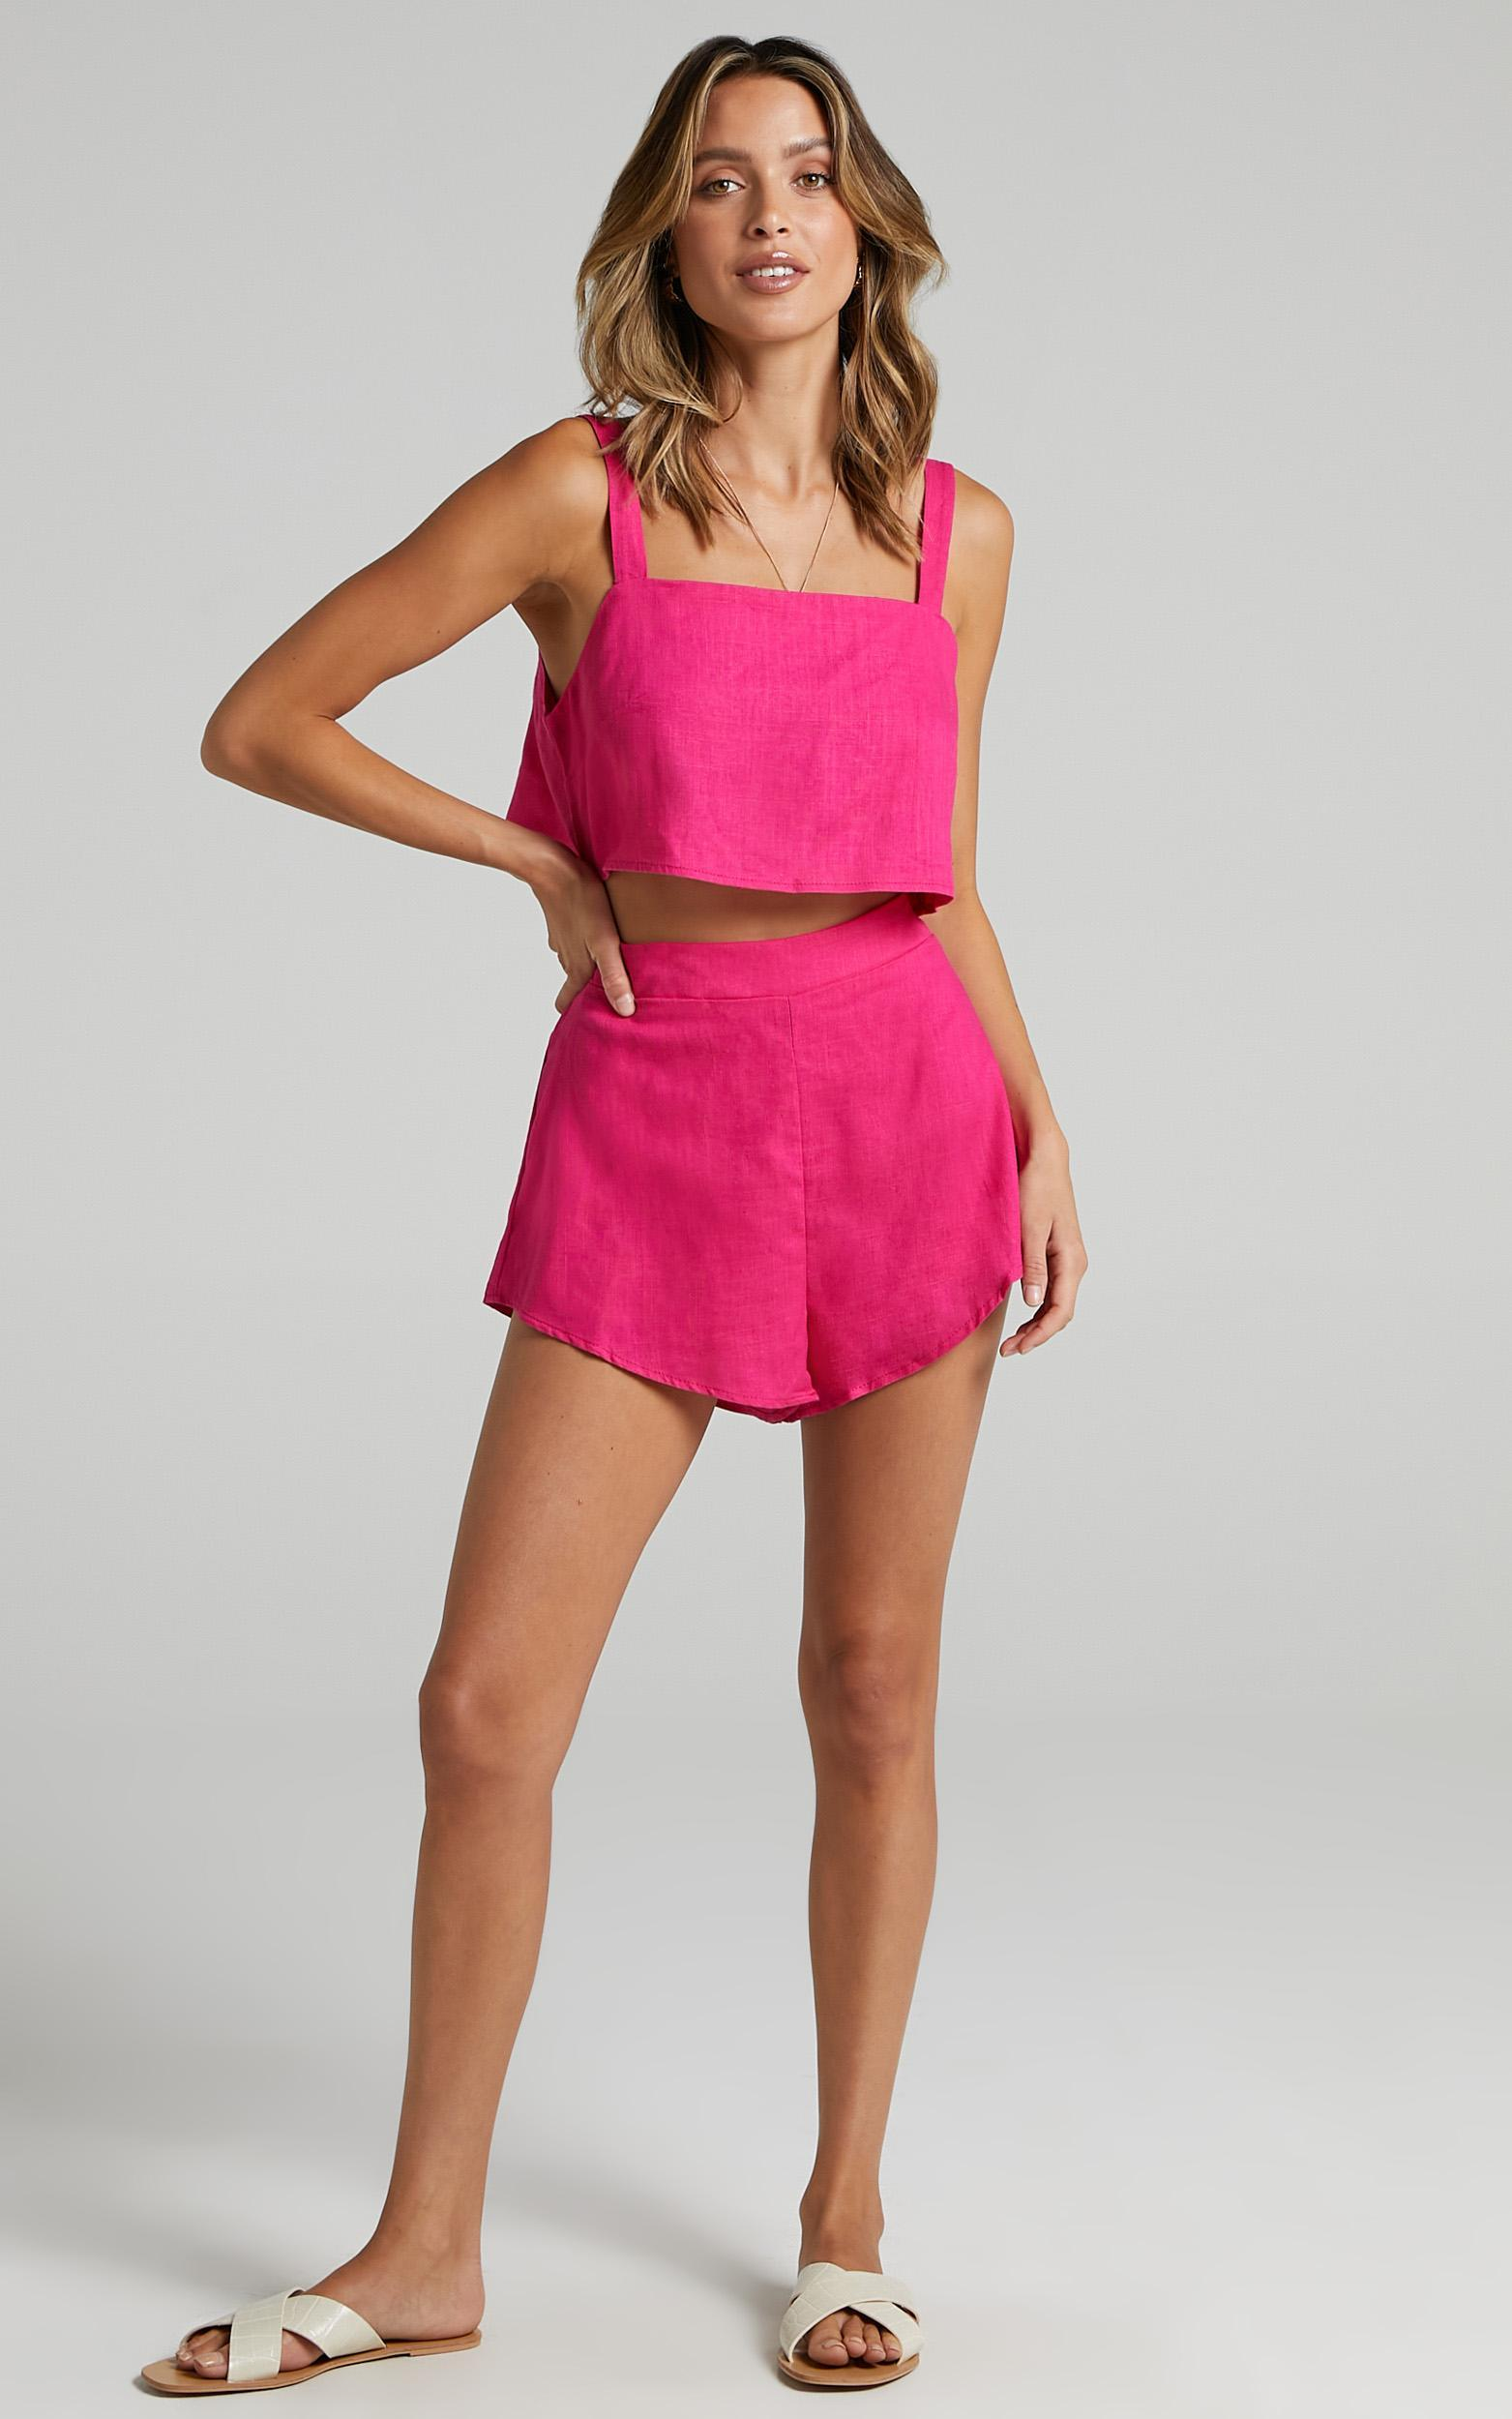 Save The Light Two Piece Set in Hot Pink - 04, PNK1, hi-res image number null